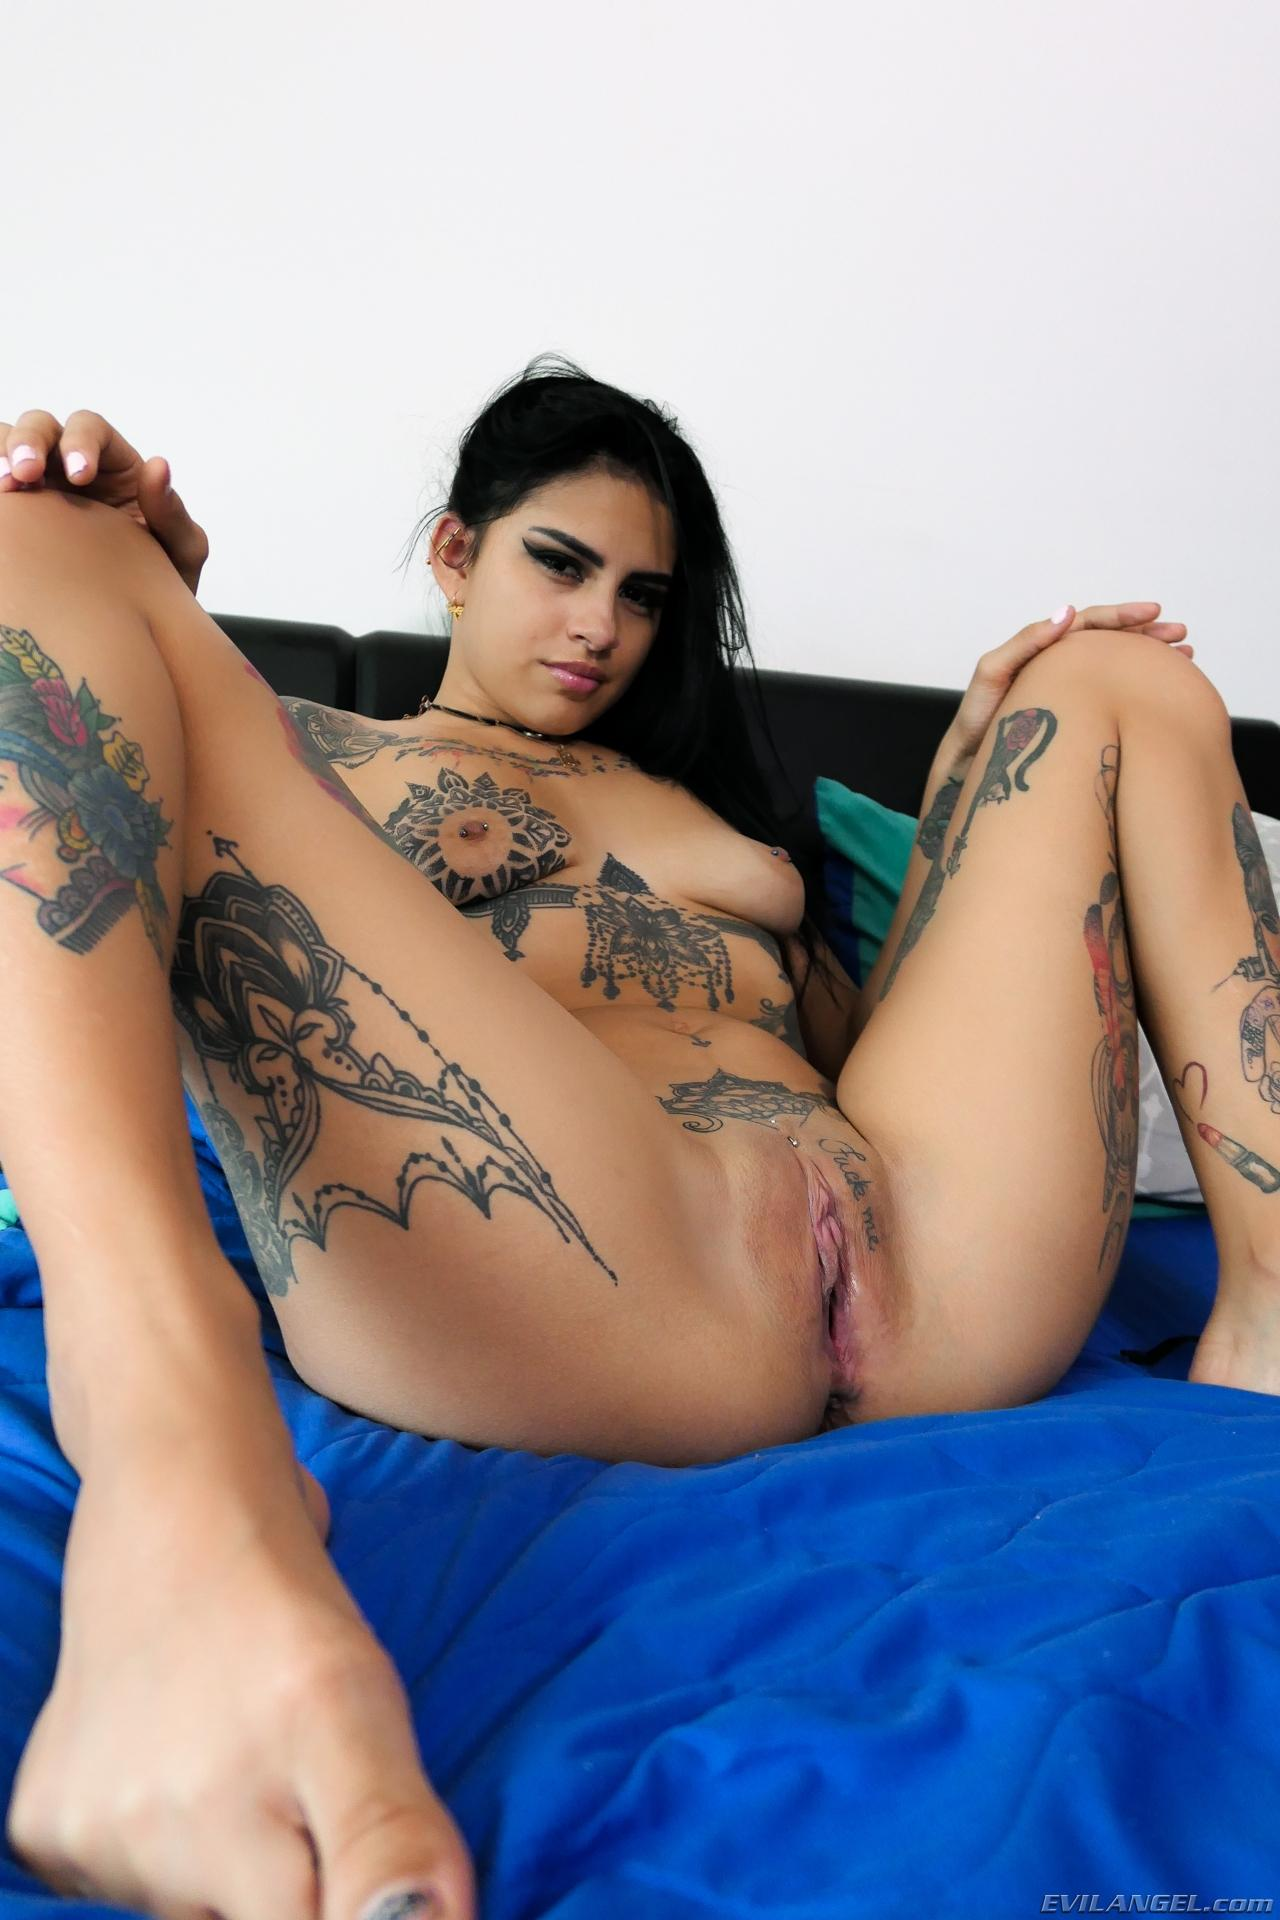 Inked Latina Kat Licious Gets Naked For You In Bed  Coed -7265